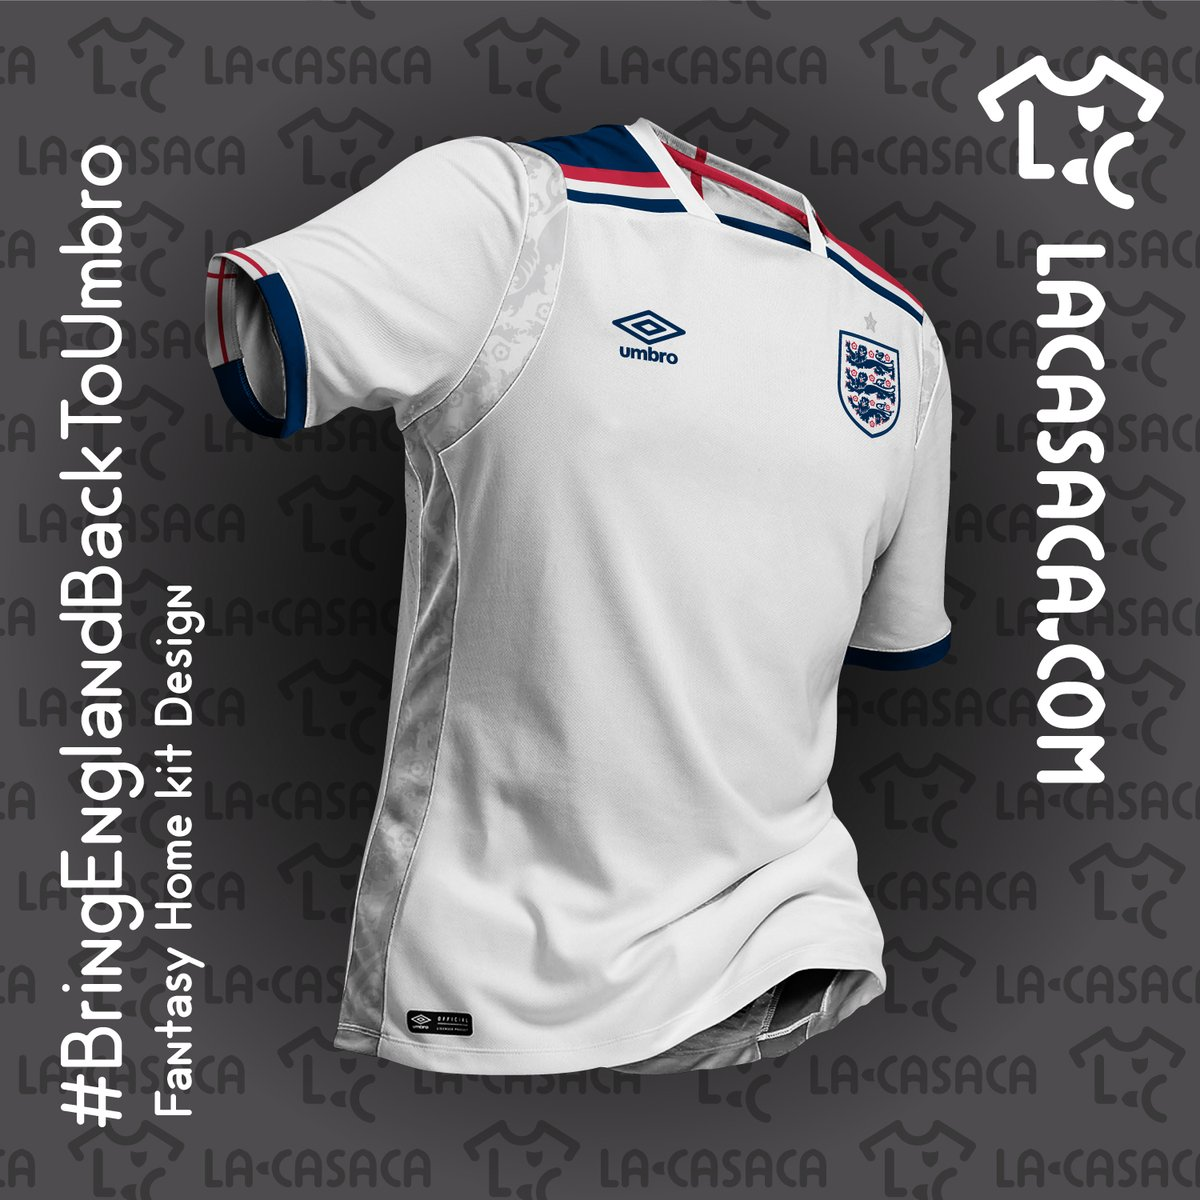 Design a t shirt kit - Inspired By The Famous Admiral England 1982 Kit The Umbro England Concept Kit By La Casaca Is White With A Remarkable Navy And Red Design On The Top Of The